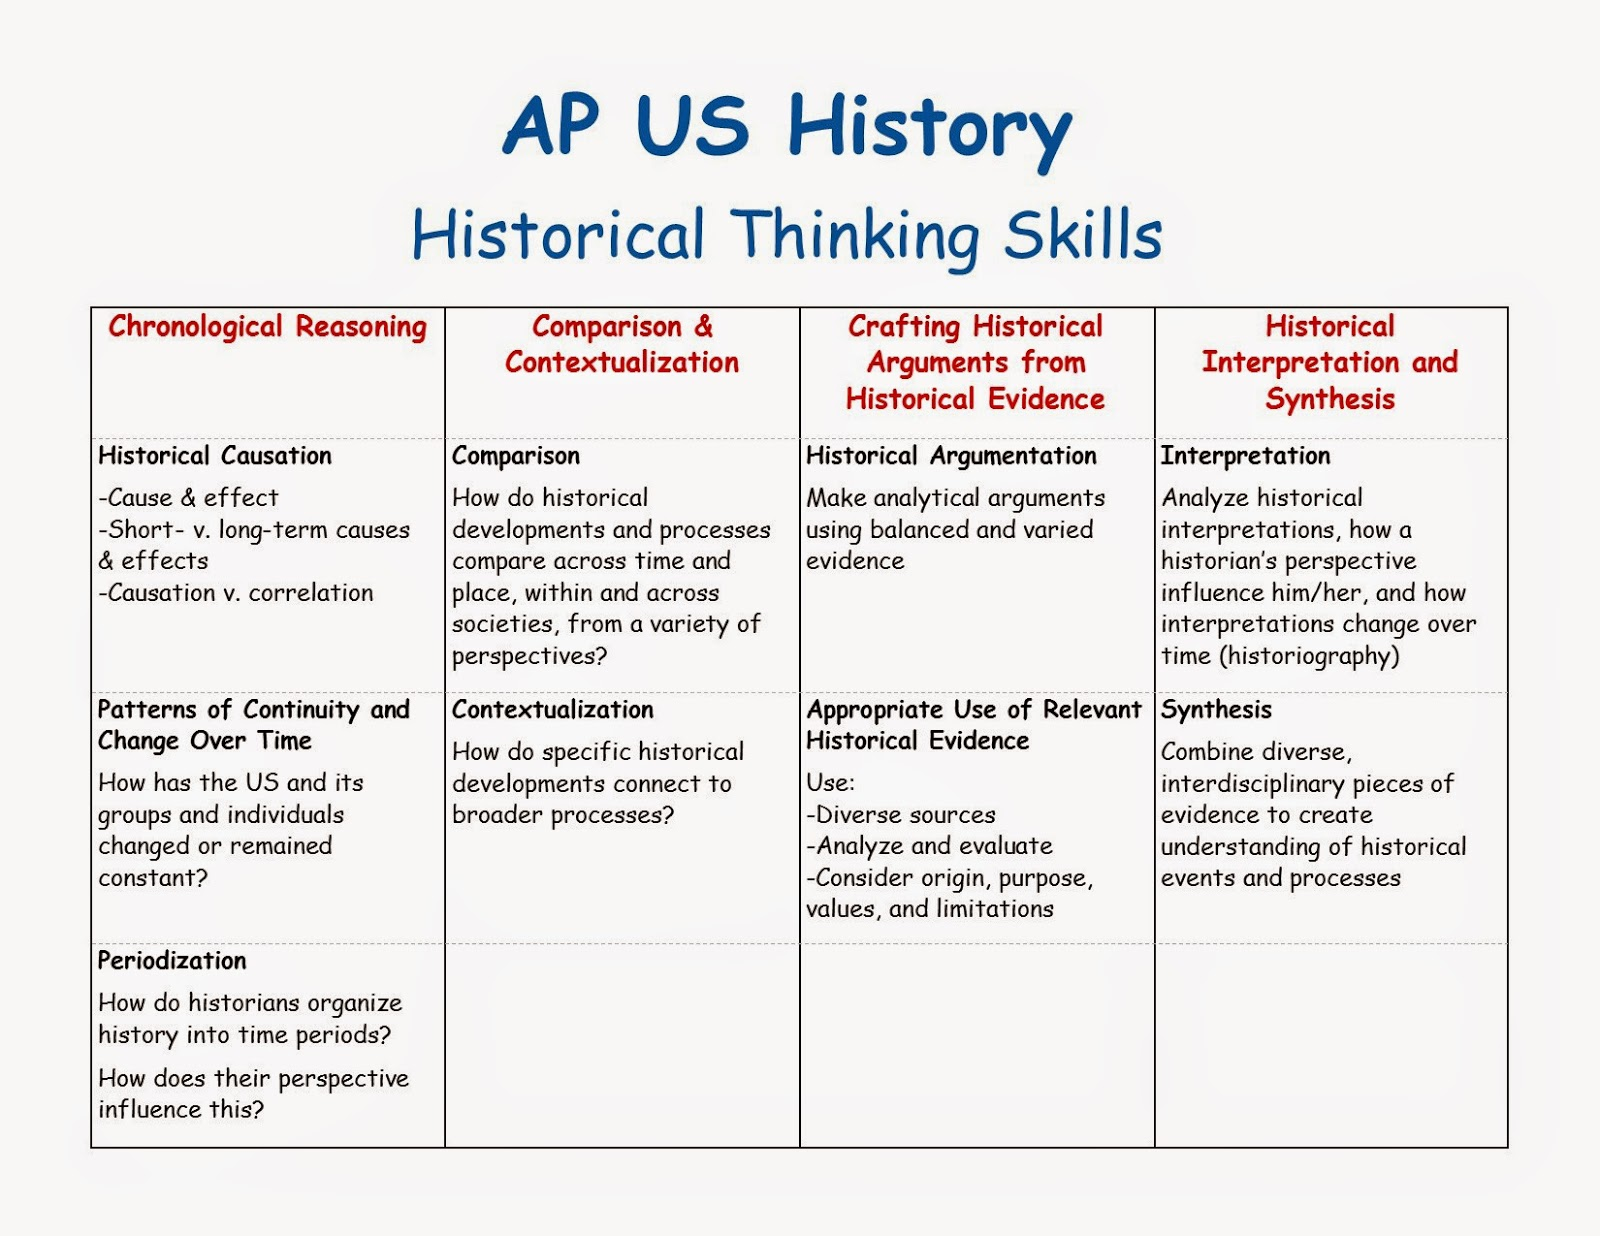 ap us history essays on reconstruction Reconstruction dbq essay - best academic writing and editing company social, june 3rd mr ap united states history dbq reconstruction p.